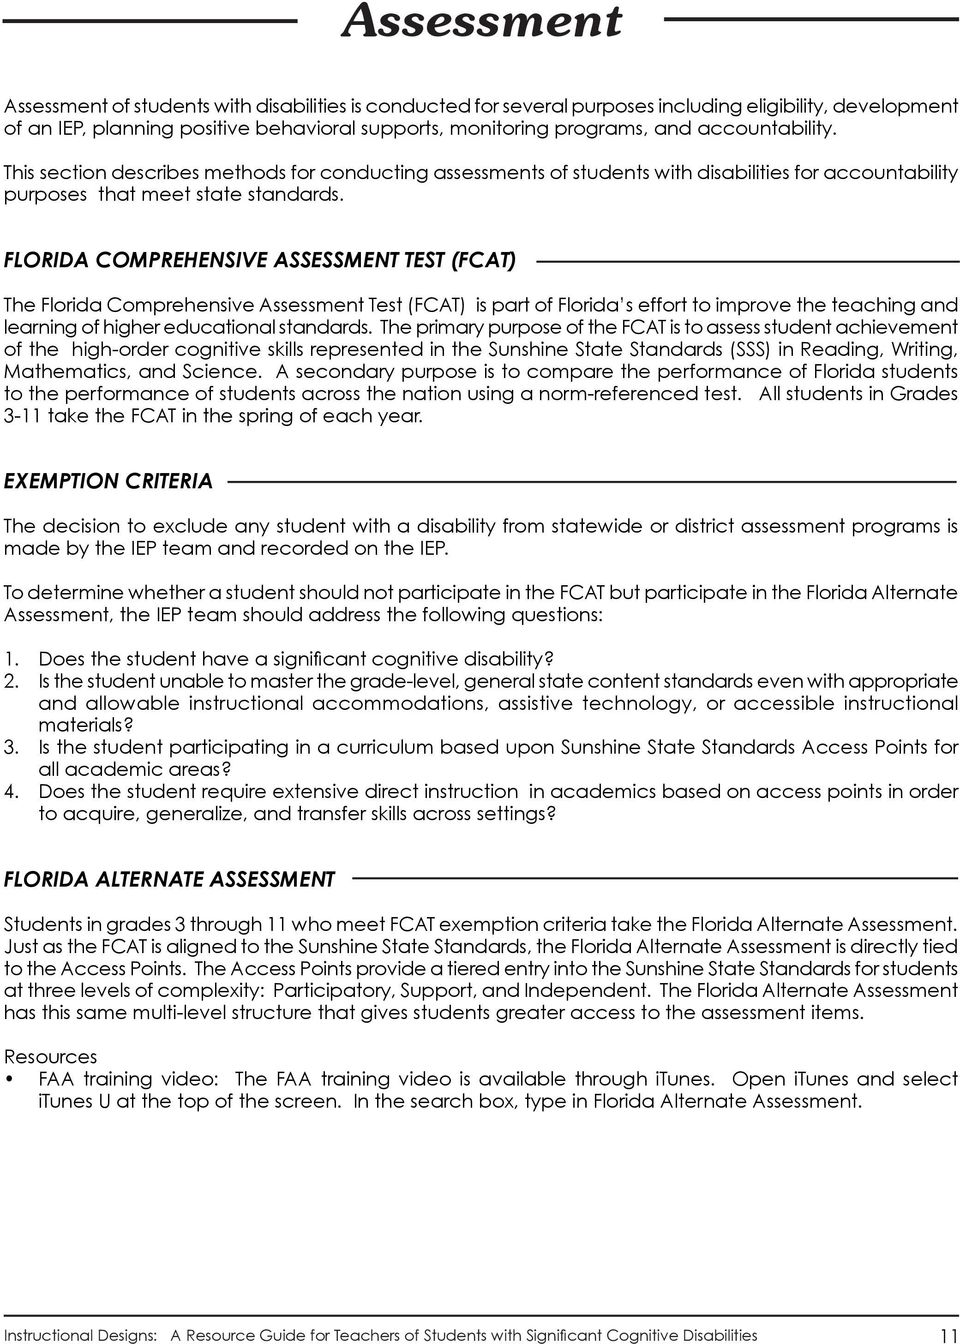 FLIDA COMPREHENSIVE ASSESSMENT TEST (FCAT) The Florida Comprehensive Assessment Test (FCAT) is part of Florida s effort to improve the teaching and learning of higher educational standards.